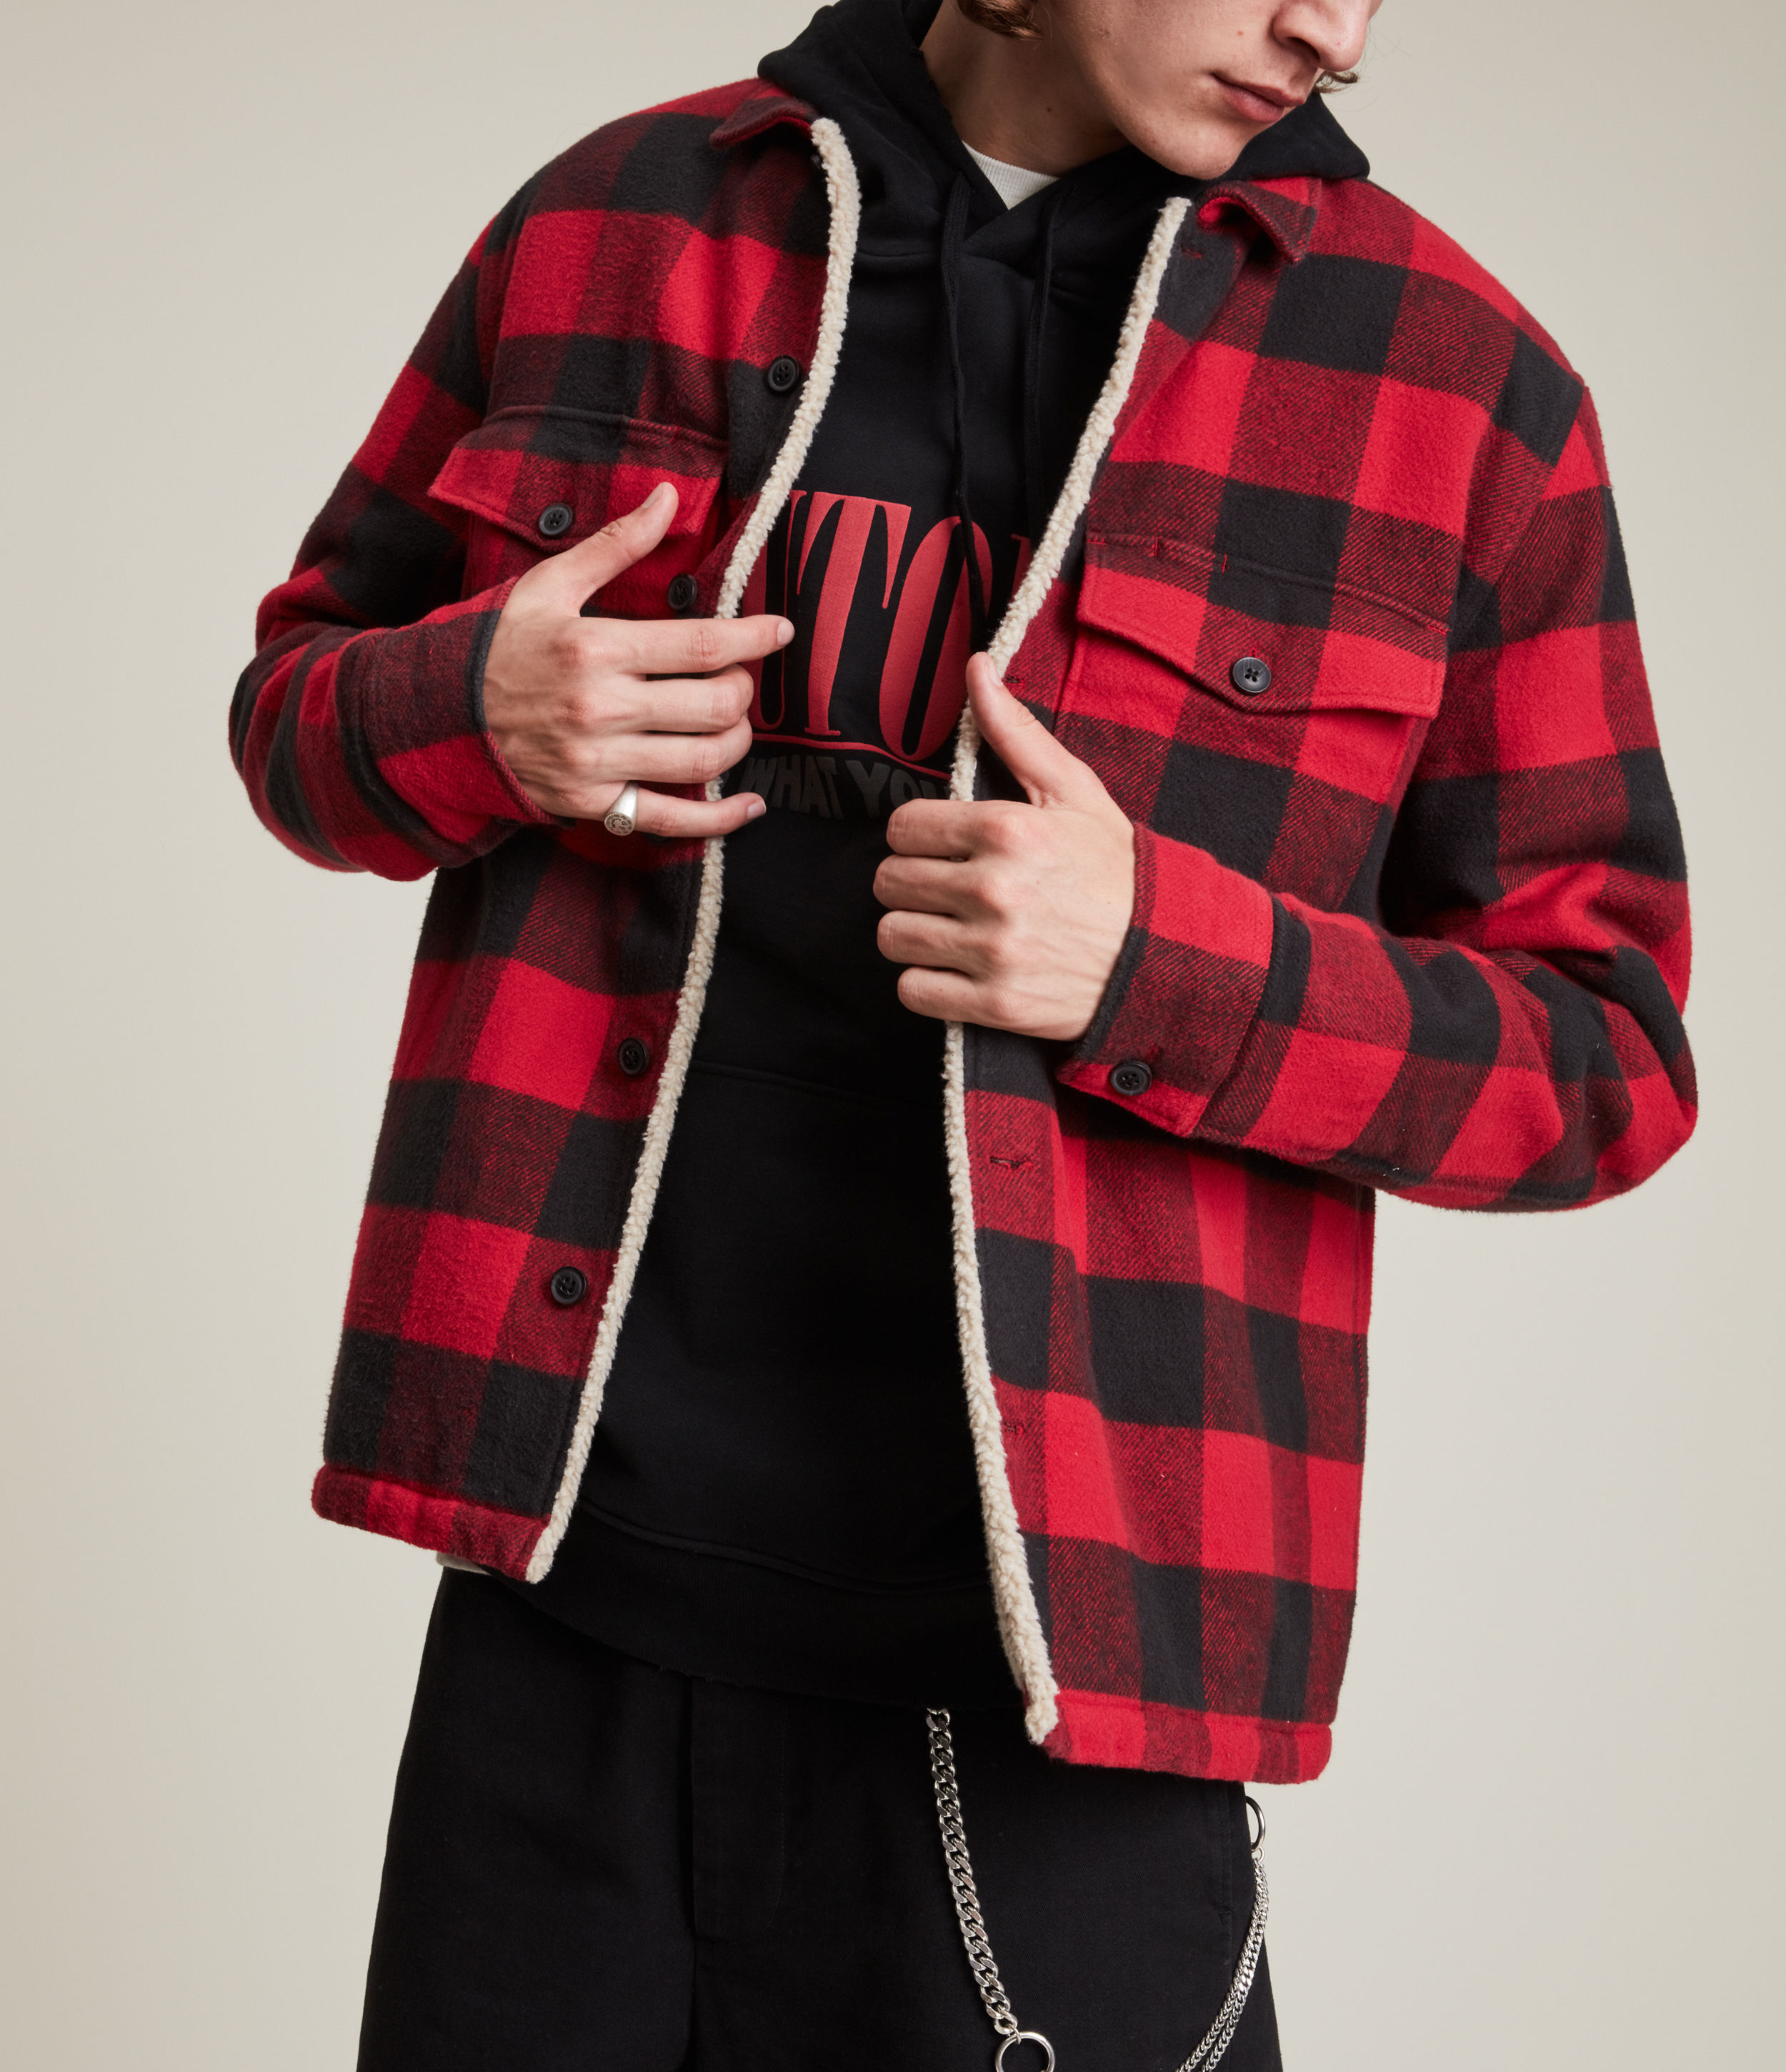 AllSaints Men's Claypool Jacket, Red and Black, Size: S